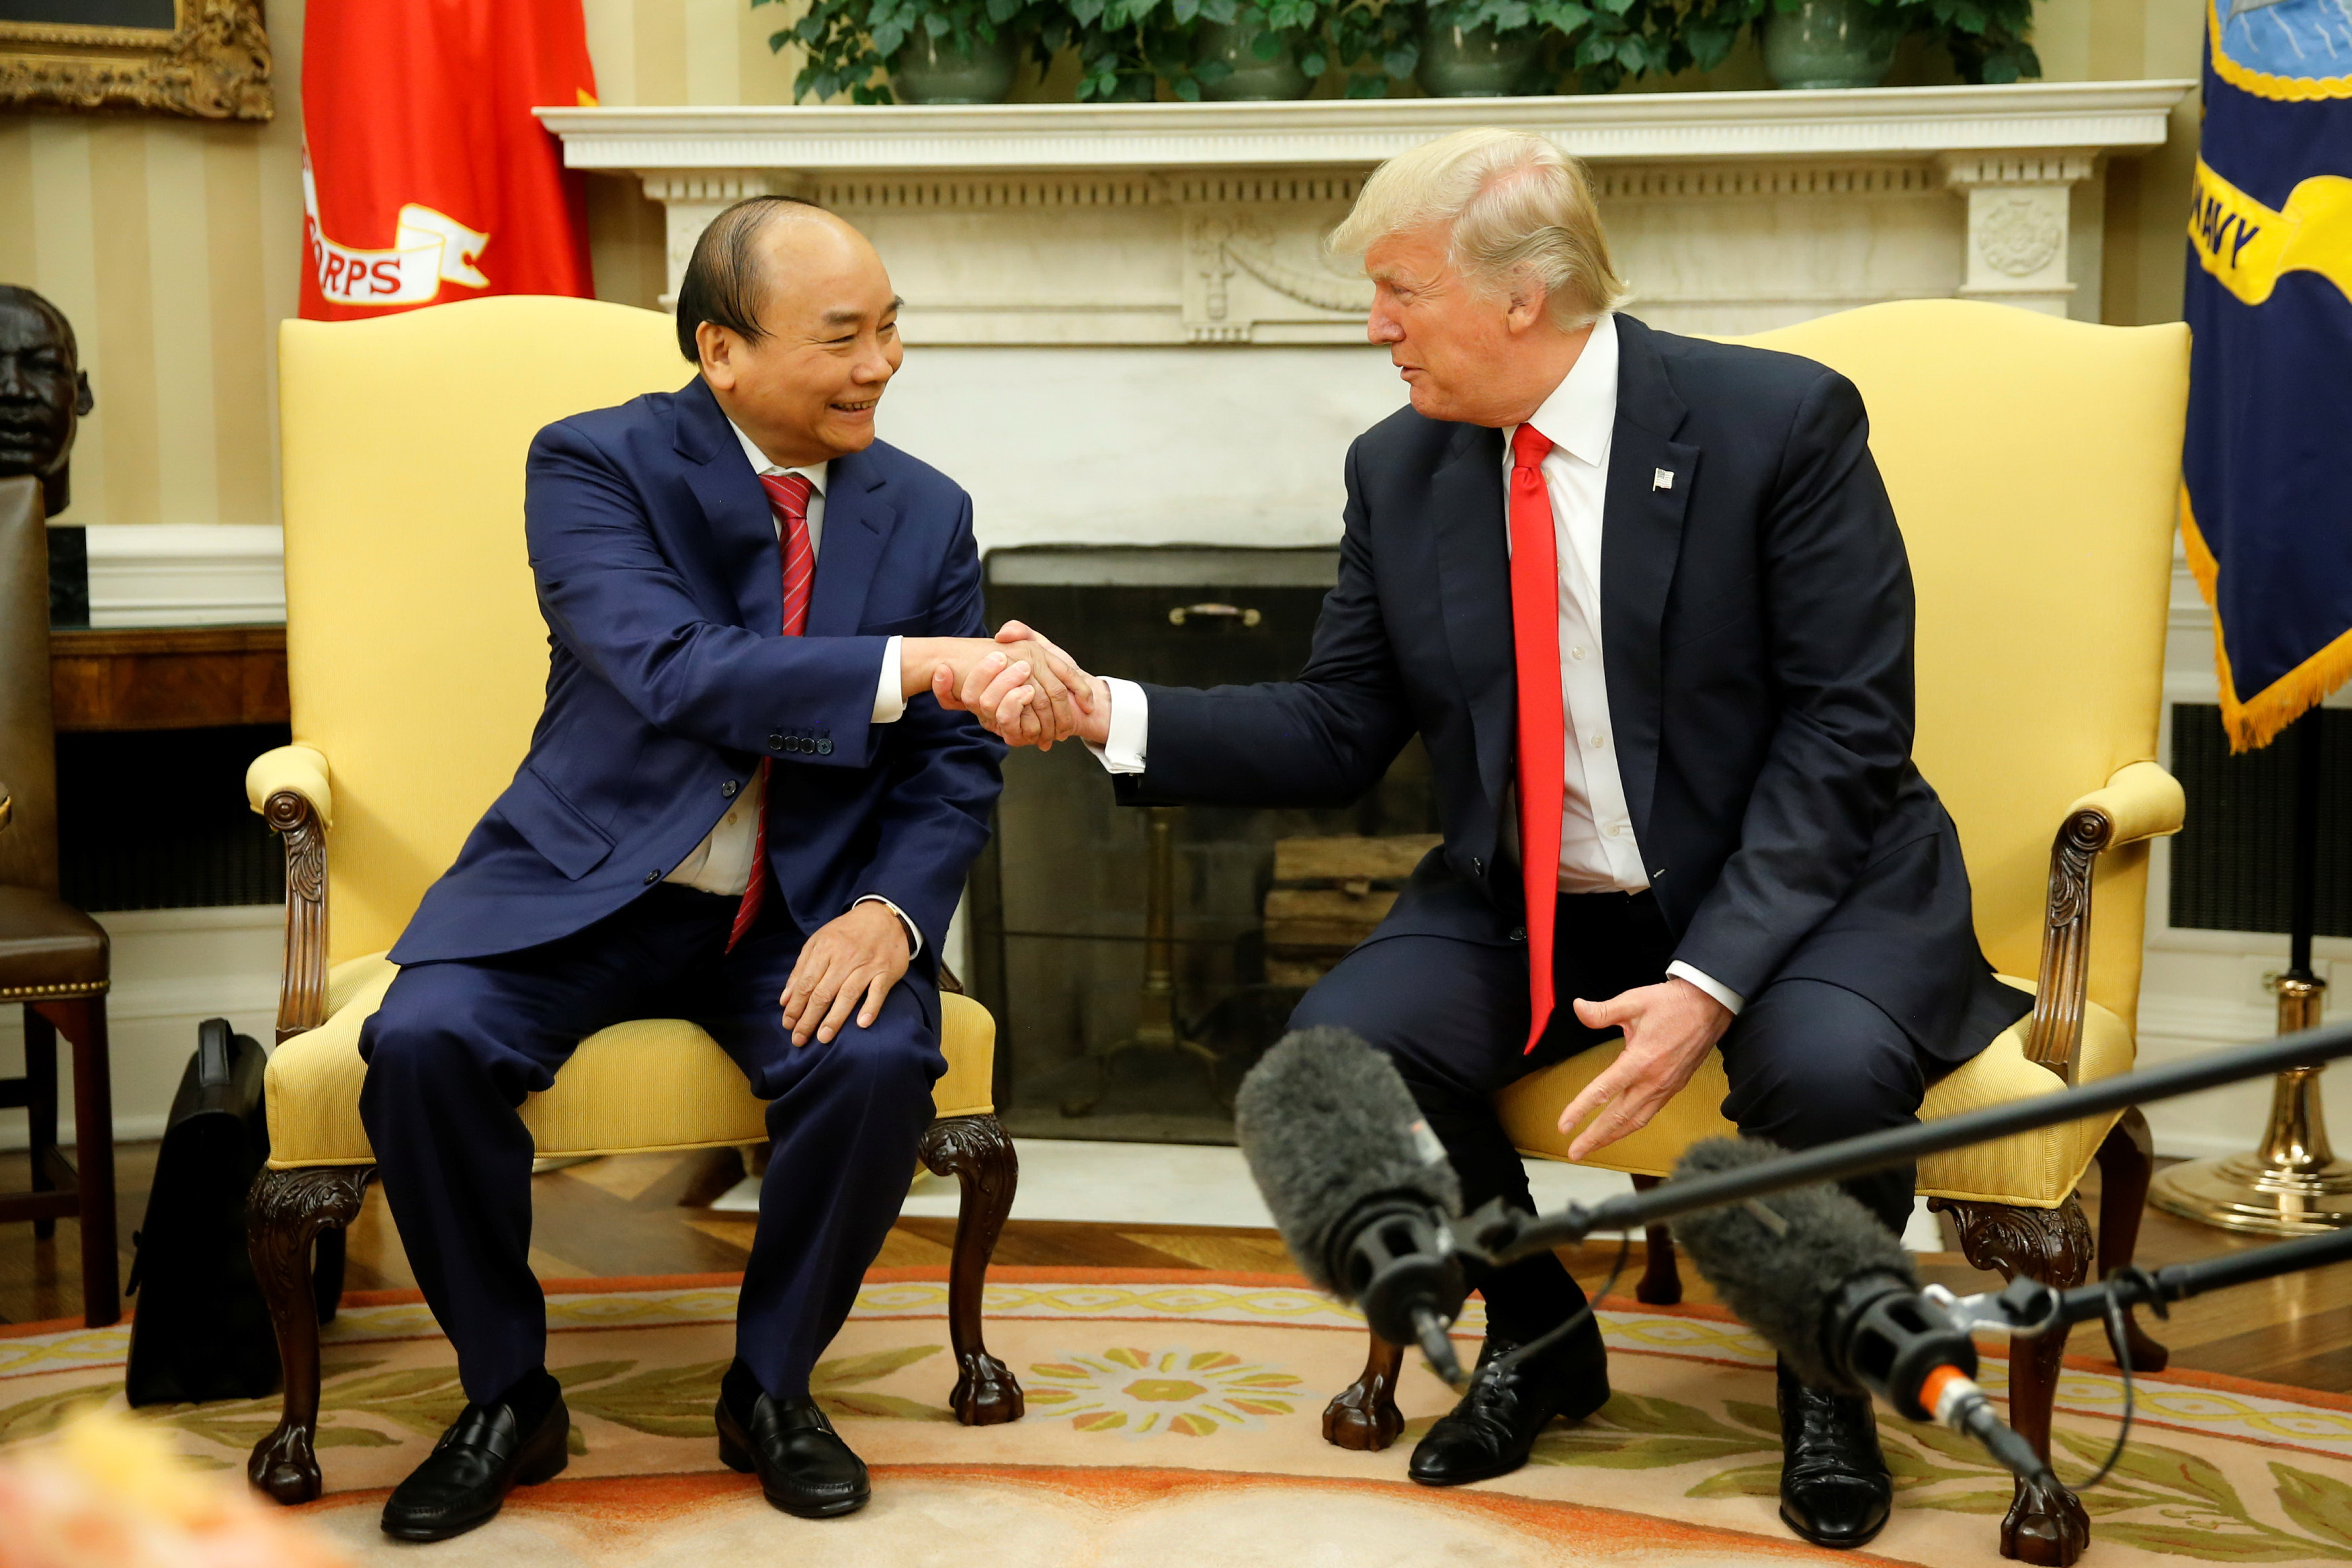 Joint statement by Vietnam, US after PM Phuc's visit to White House